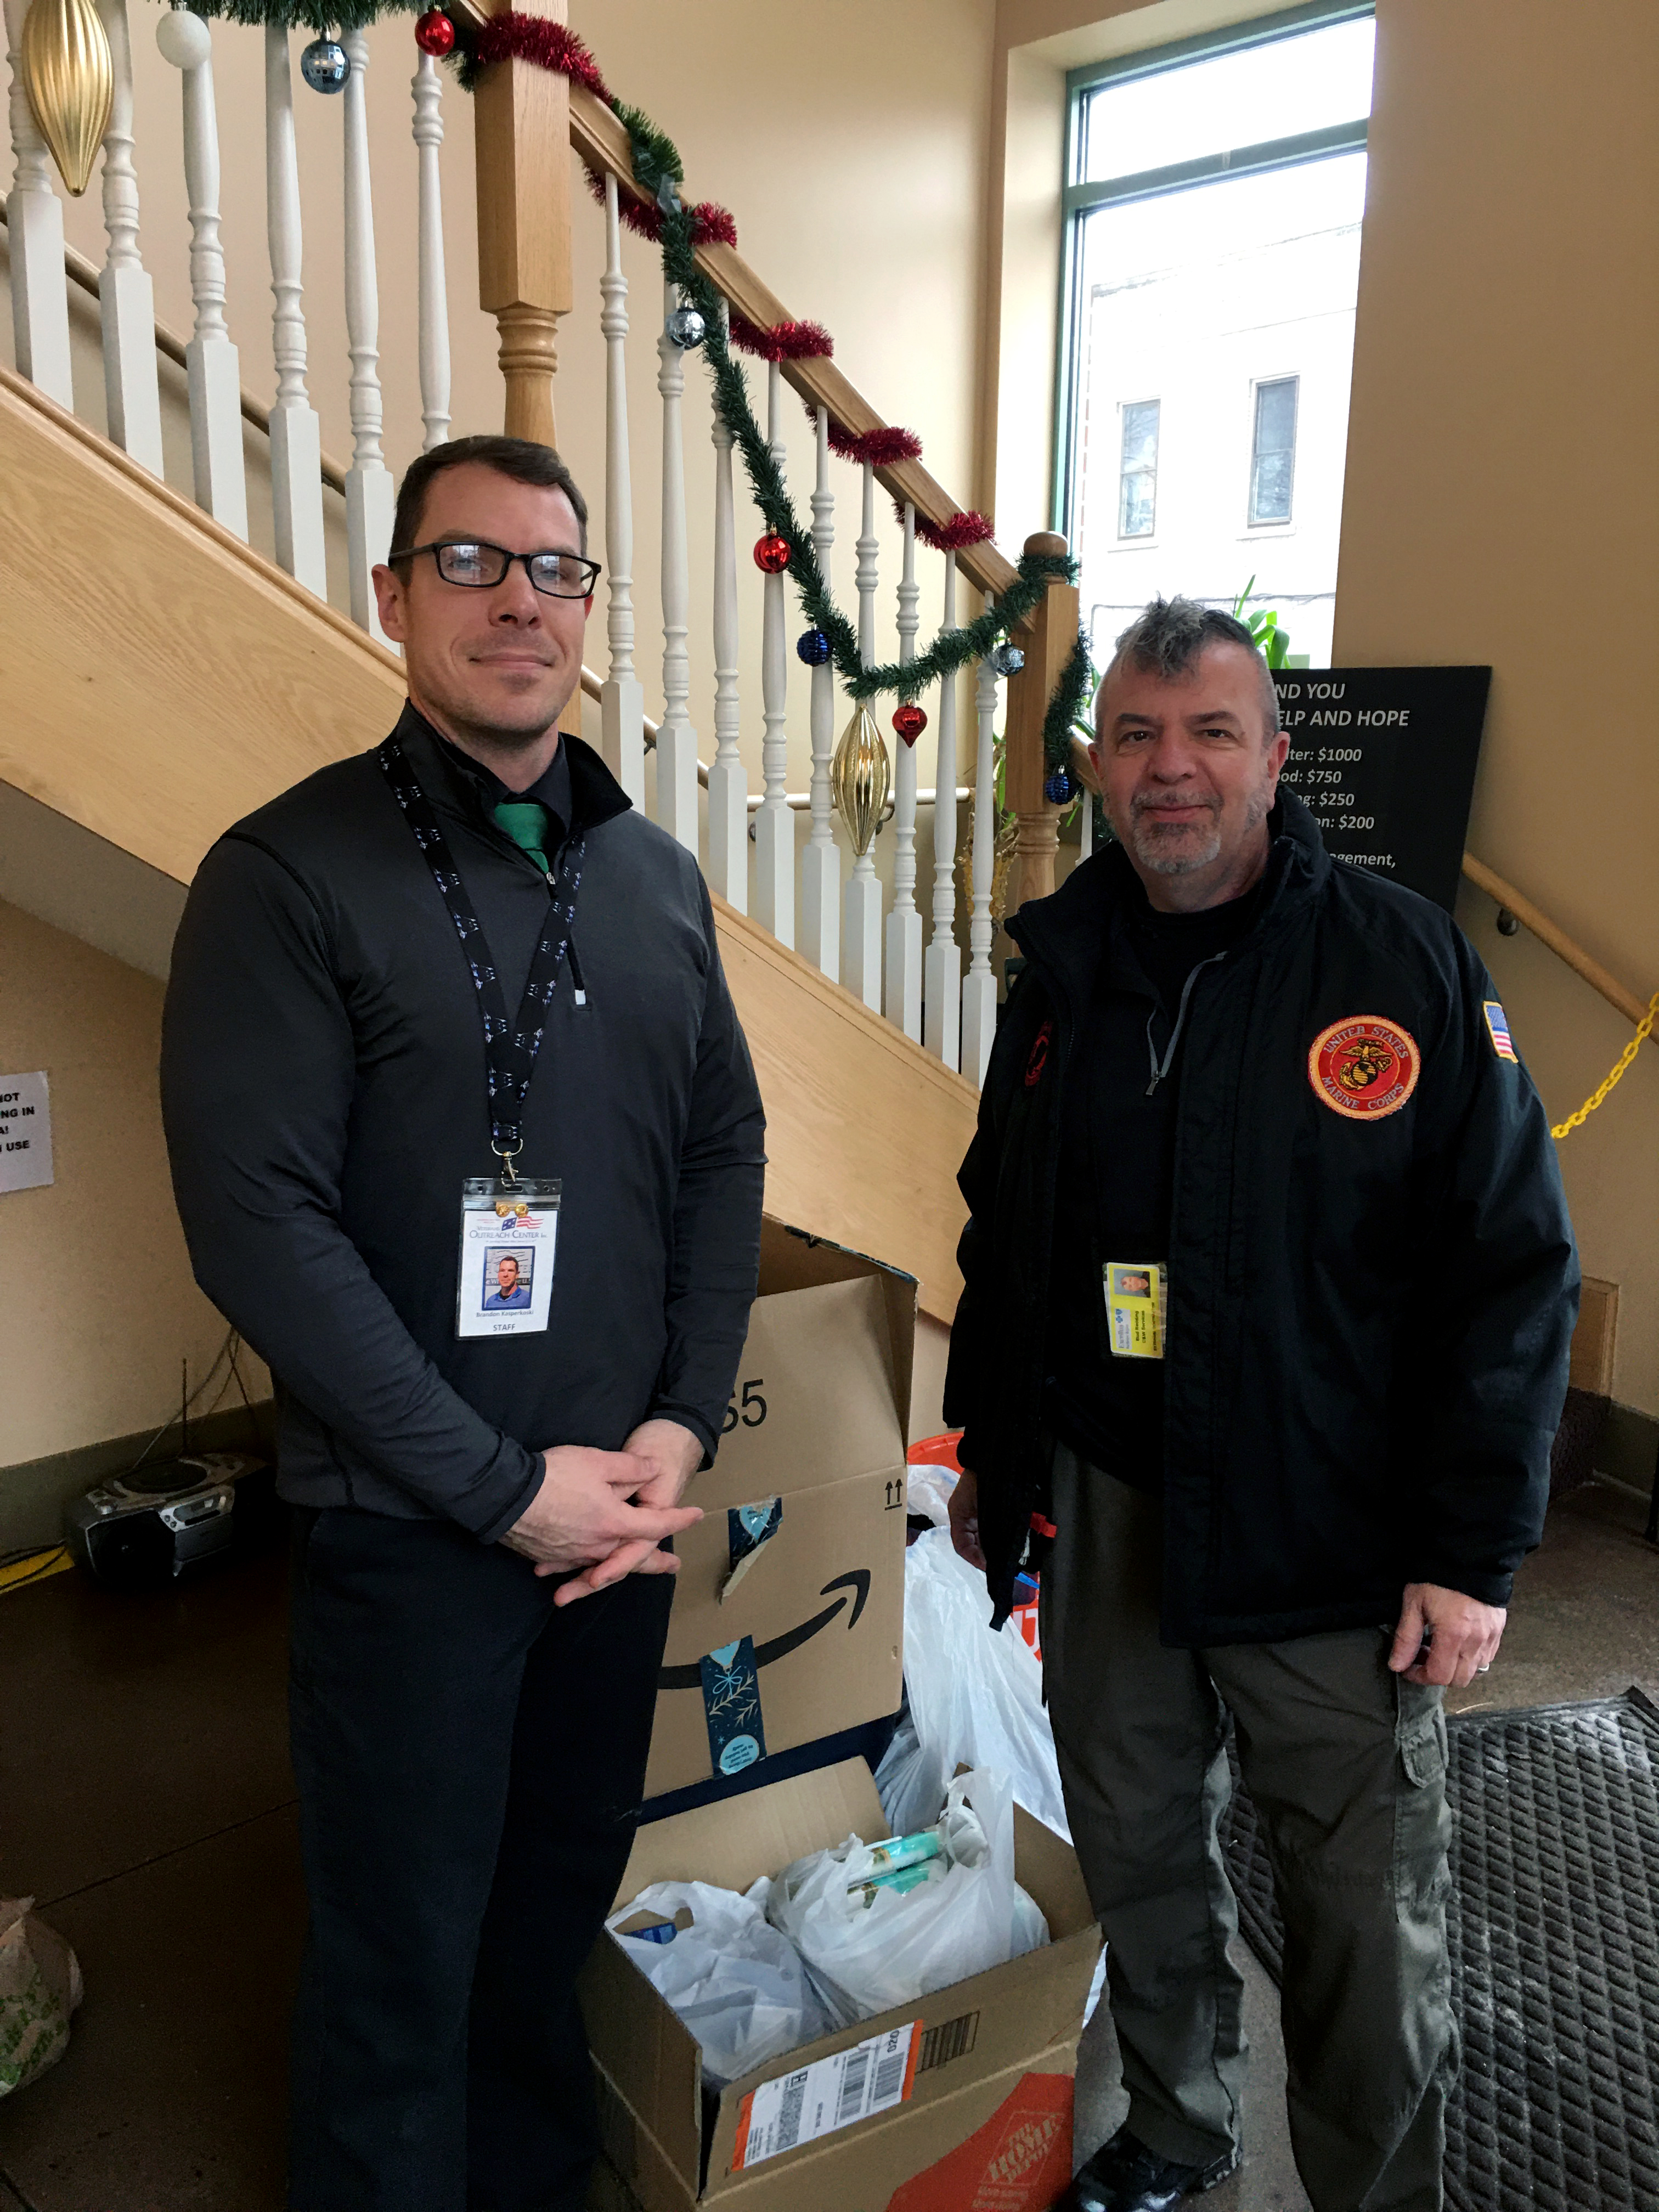 Bud Redding collects donations for homeless veterans in NY state